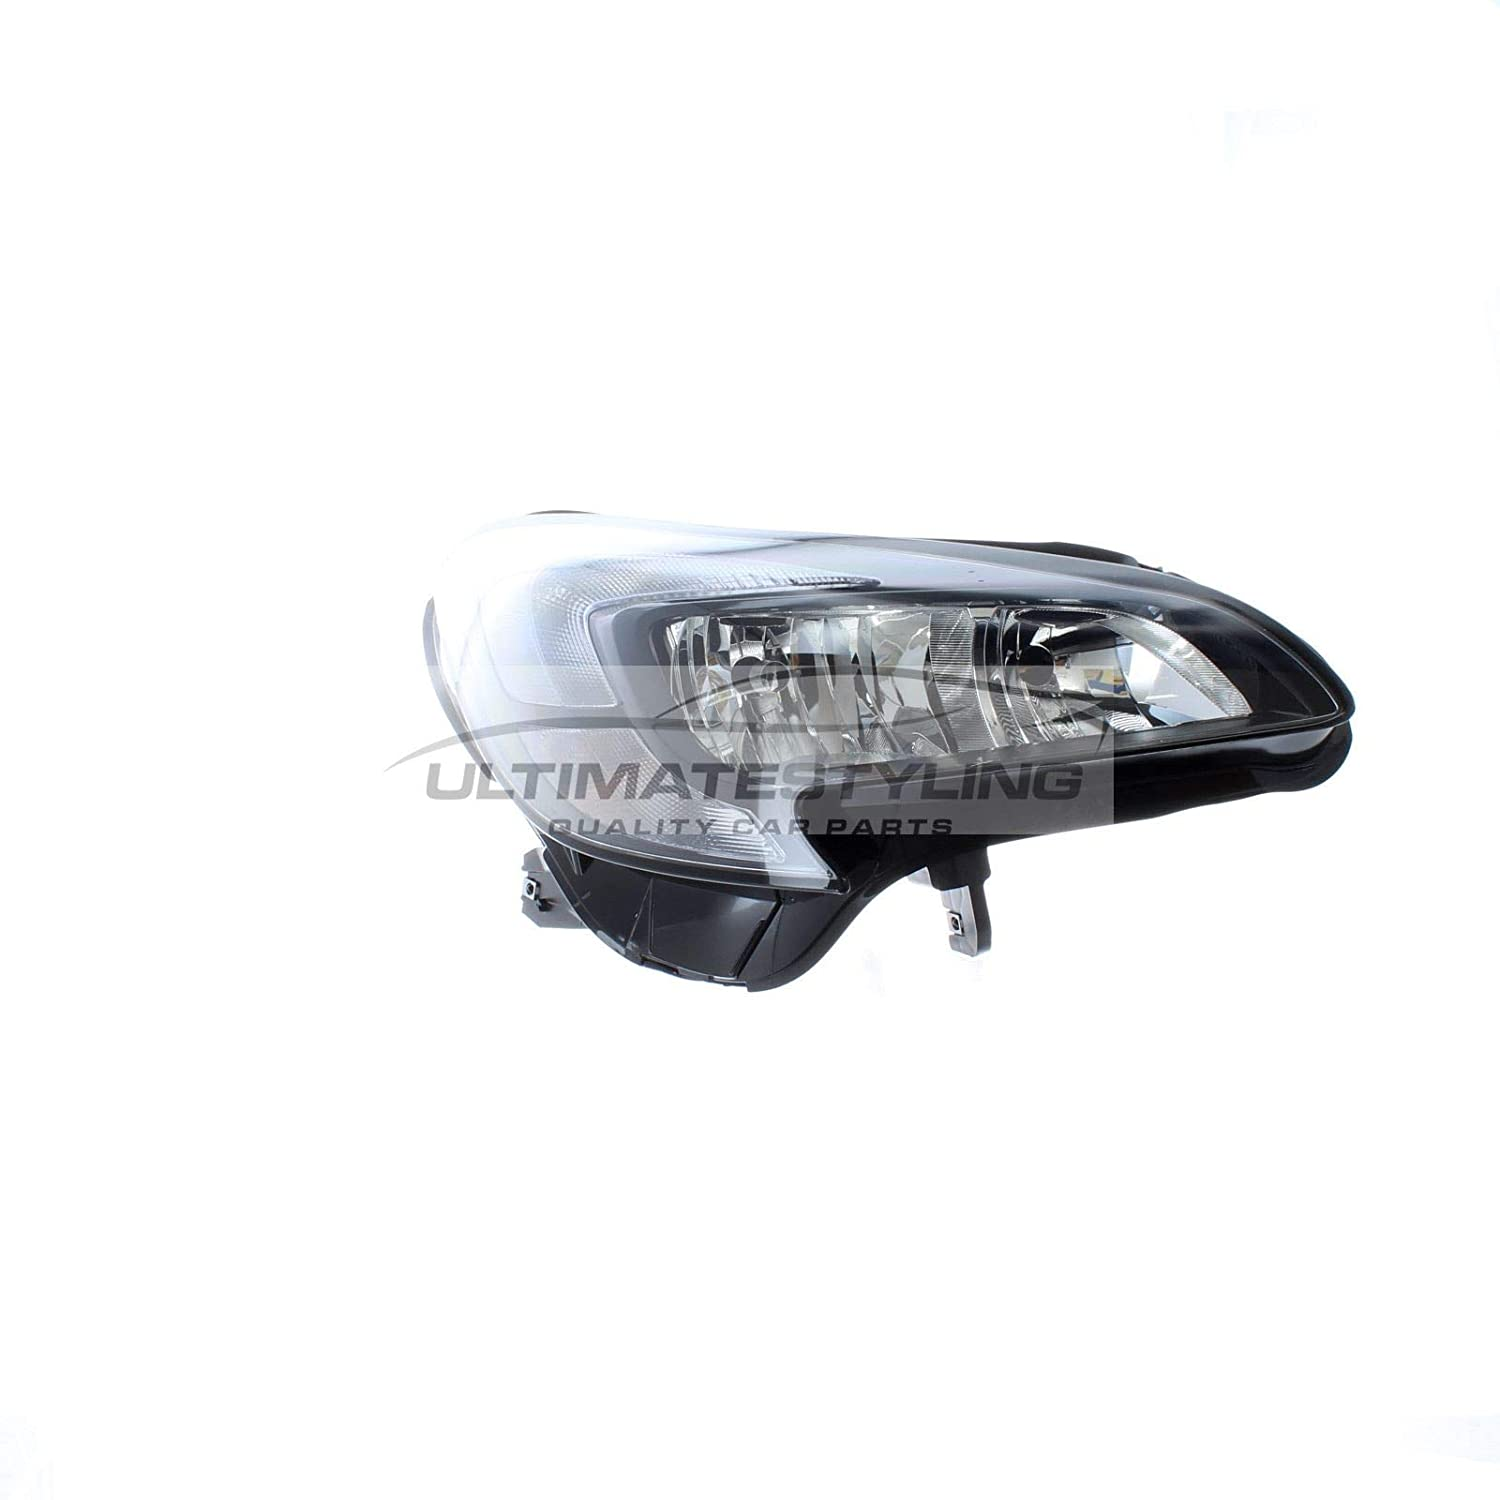 Ultimate Styling Electric Adjustment Halogen Headlights//Headlamps Without Load Level Motor Drivers /& Passenger Side Internal Colour Chrome Surround With Chrome Inner Bezel